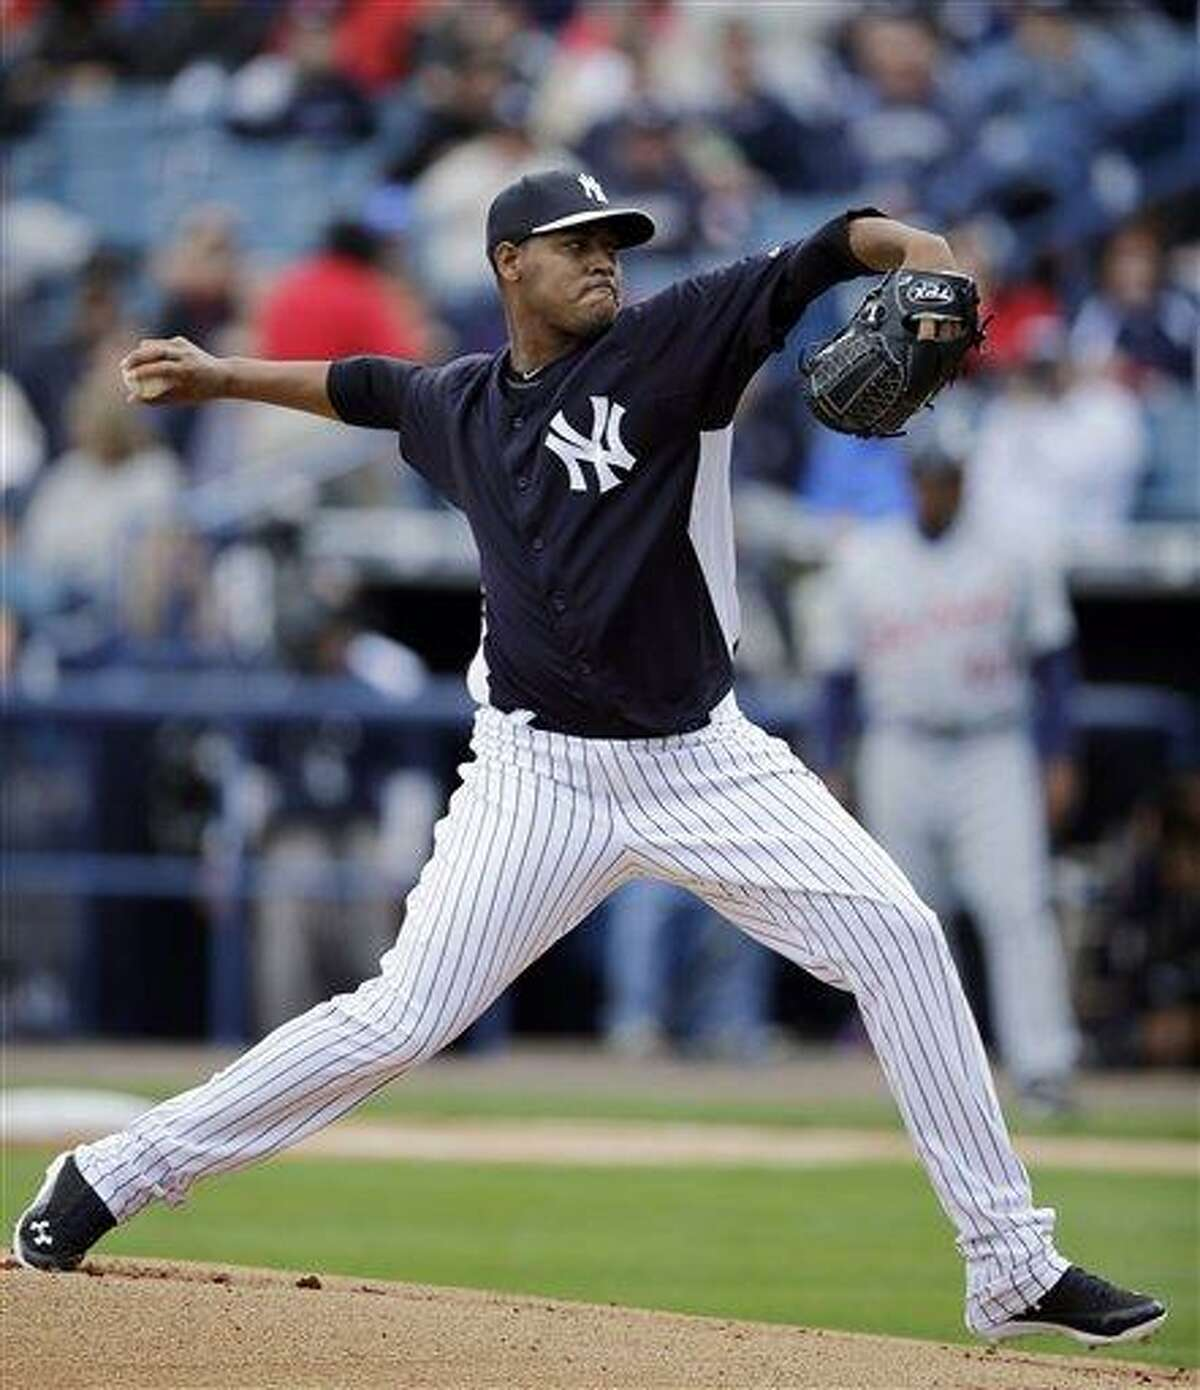 New York Yankees' Ivan Nova pitches during the first inning of an exhibition spring training baseball game against the Detroit Tigers, Saturday, March 2, 2013, in Tampa, Fla. (AP Photo/Matt Slocum)